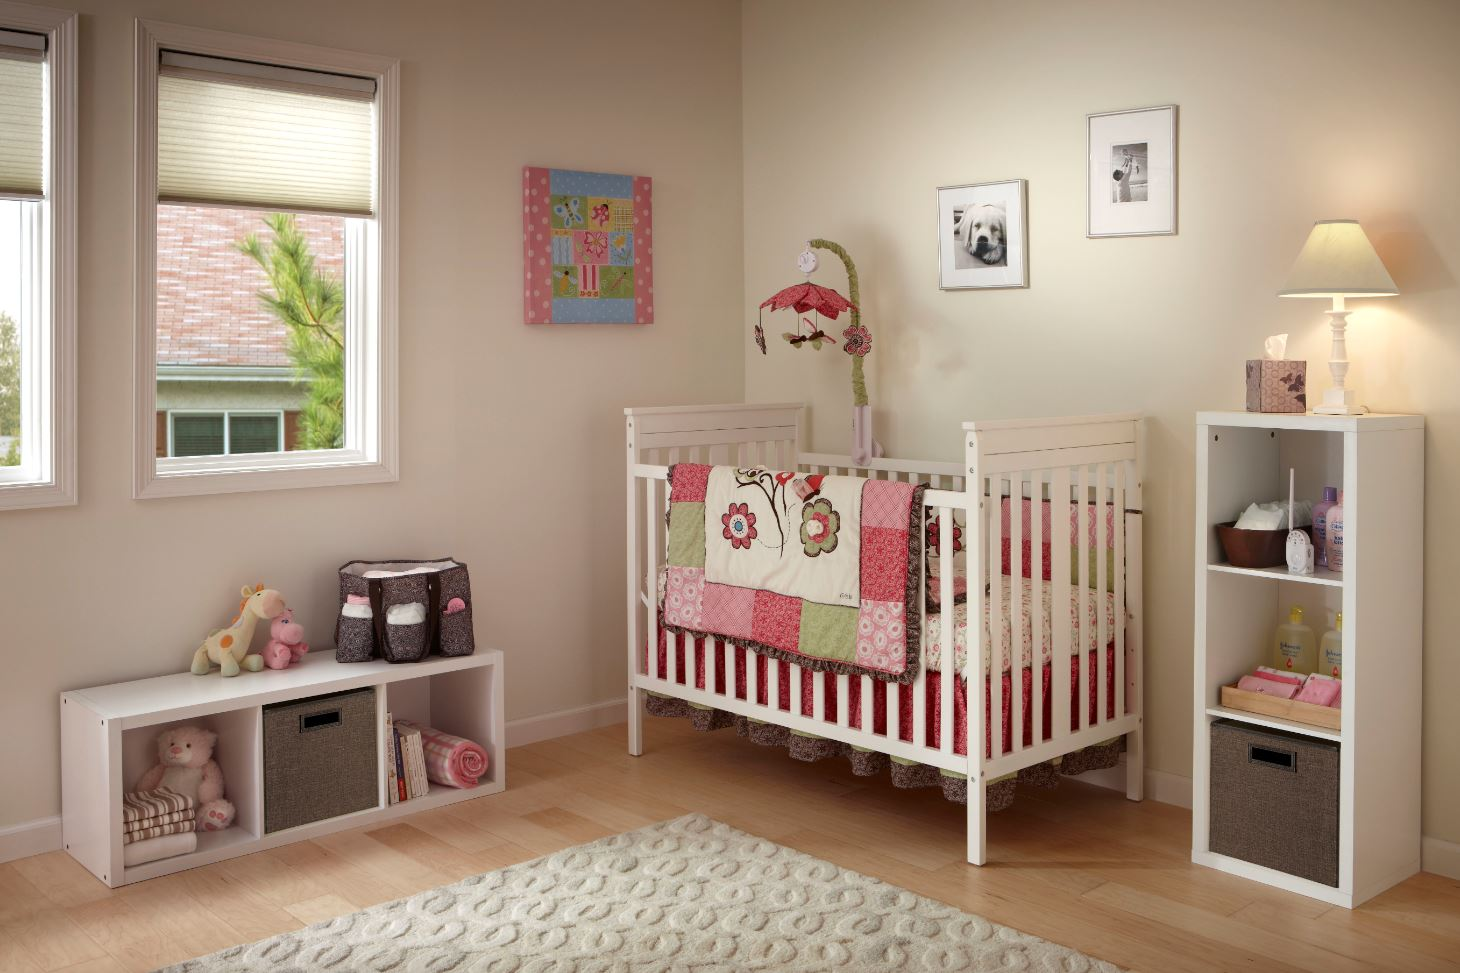 5 Tips for Nursery Room Preparation